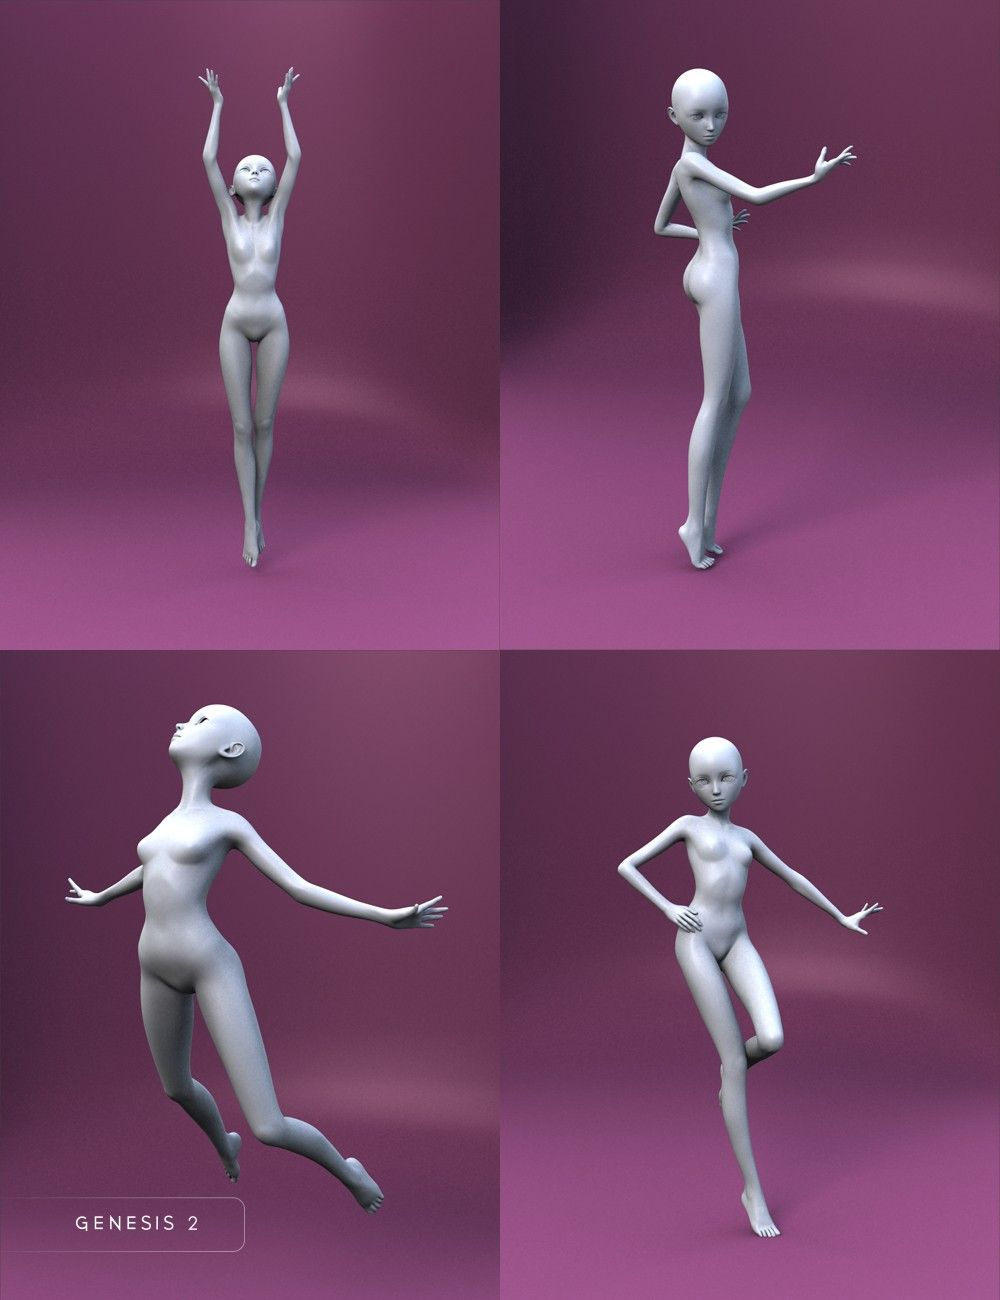 Bell Anime Poses For Keiko 6 And Aiko 6 3d Models And 3d Software By Daz 3d Anime Poses Art Reference Poses Drawings